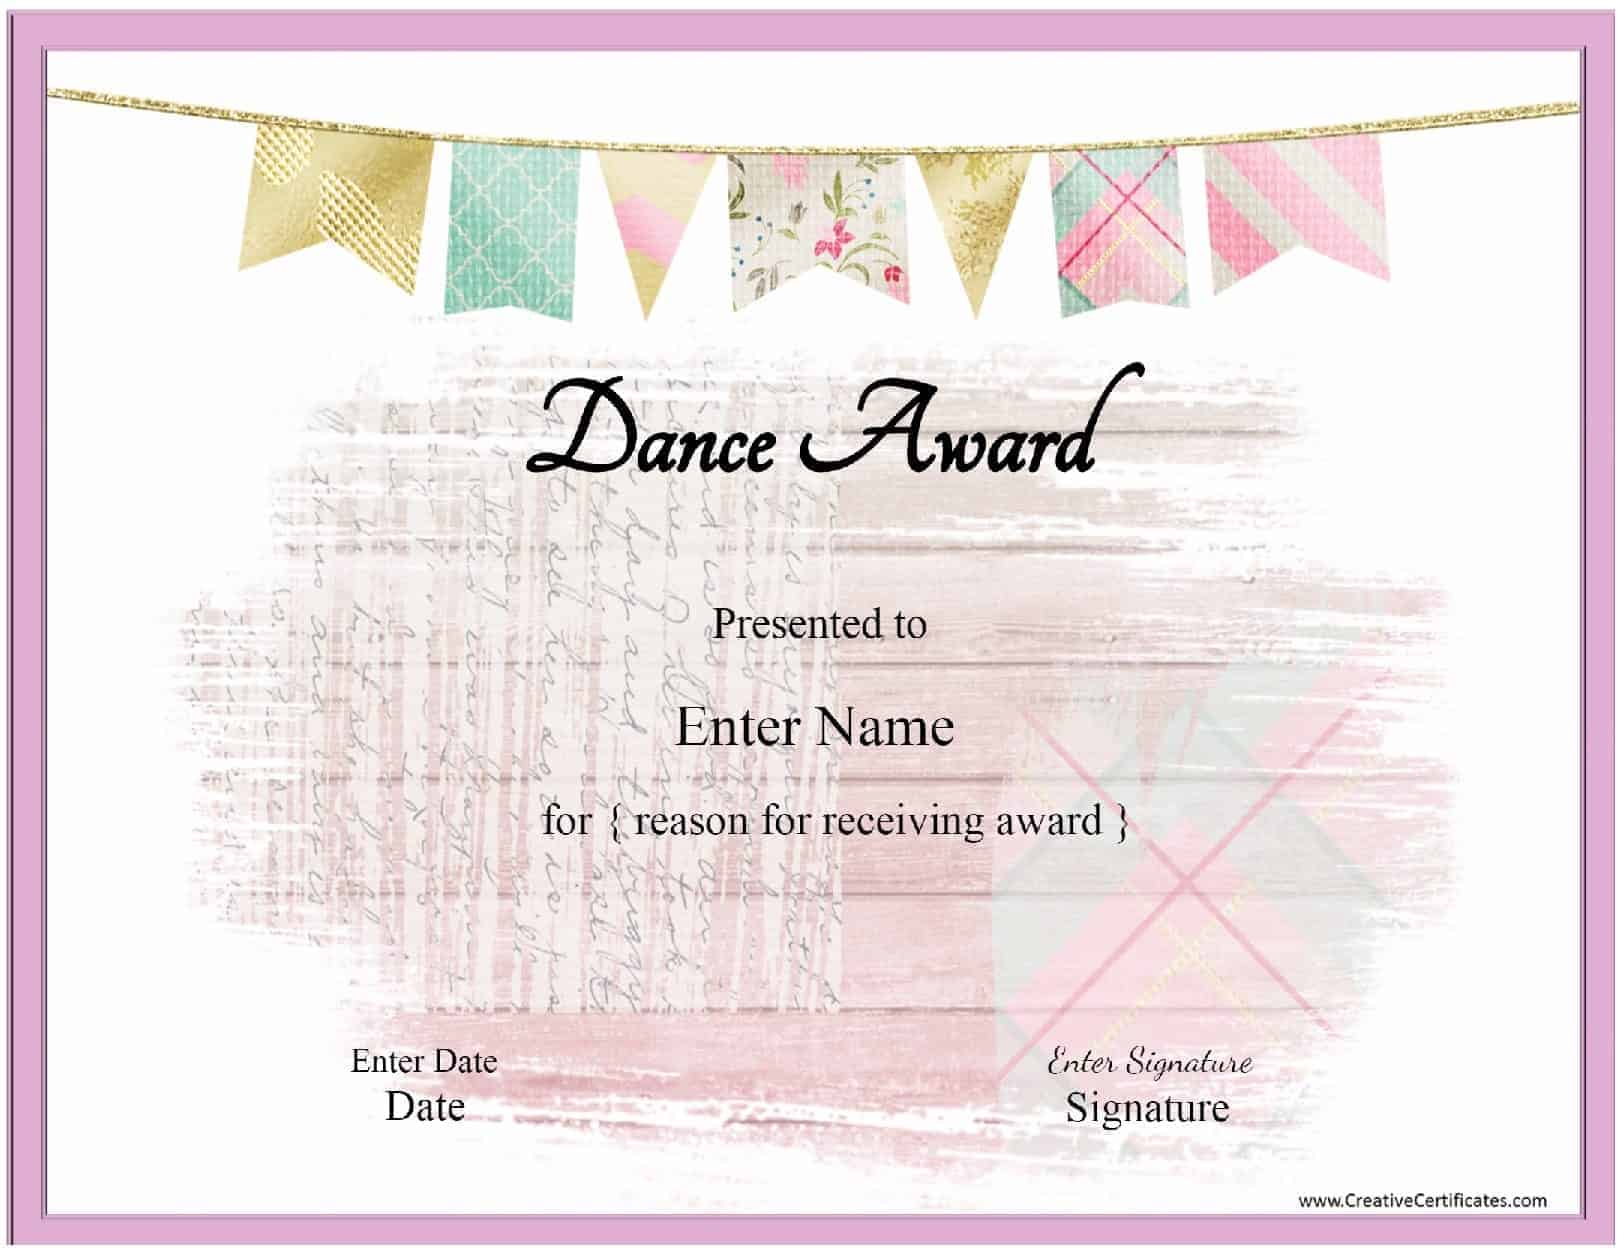 Free dance certificate template customizable and printable dance certificate template with a pink banenr and a pink frame yadclub Gallery